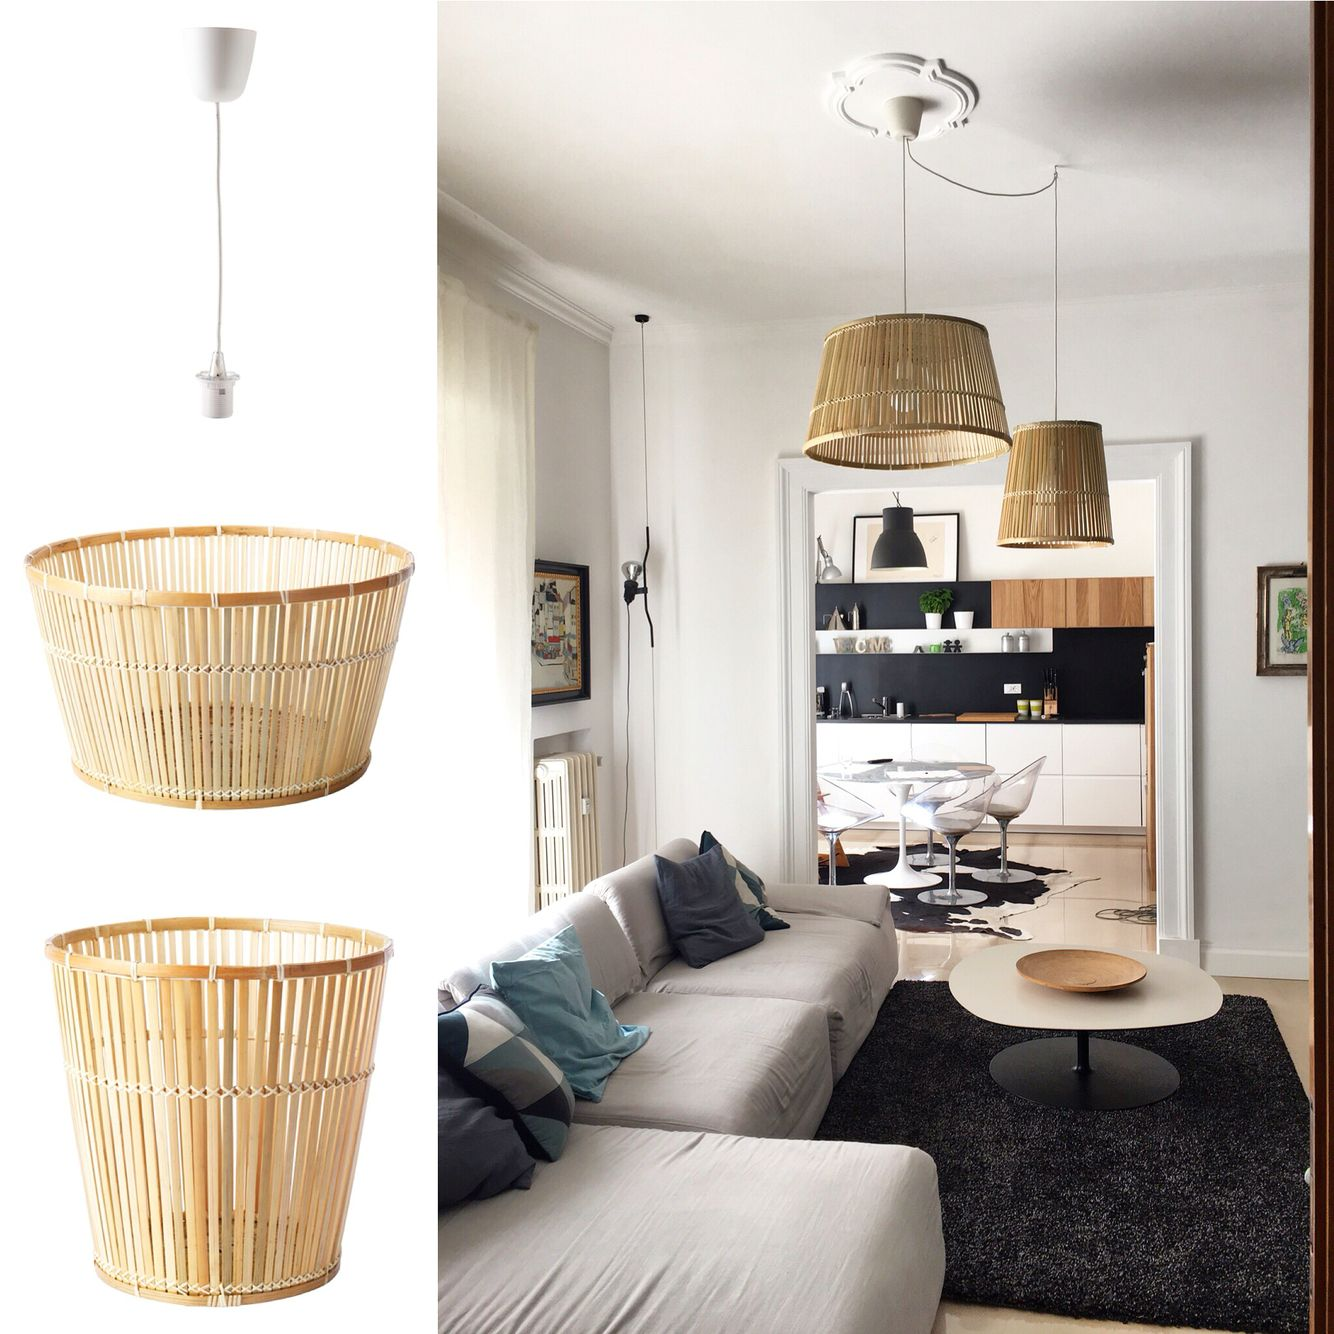 Ikea Hack Viktigt Baskets As Pendant Lights By Mommodesign Ikea Hack Furniture Hacks Ikea Furniture Hacks